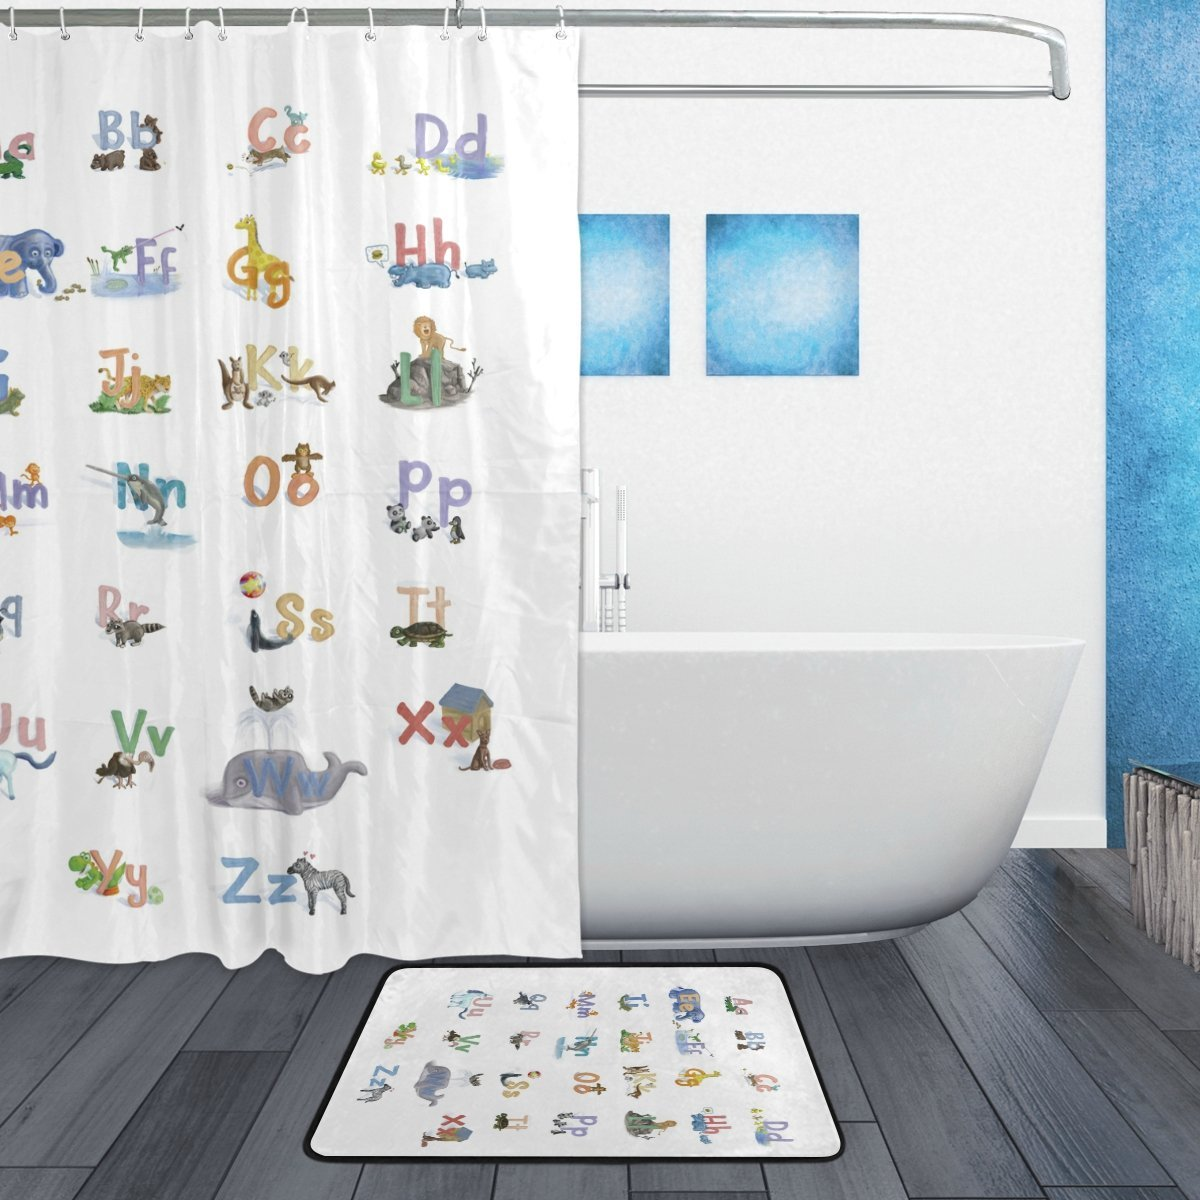 Learning Tools for Kids Shower Curtain and Mat Set, ABC Alphabet ...